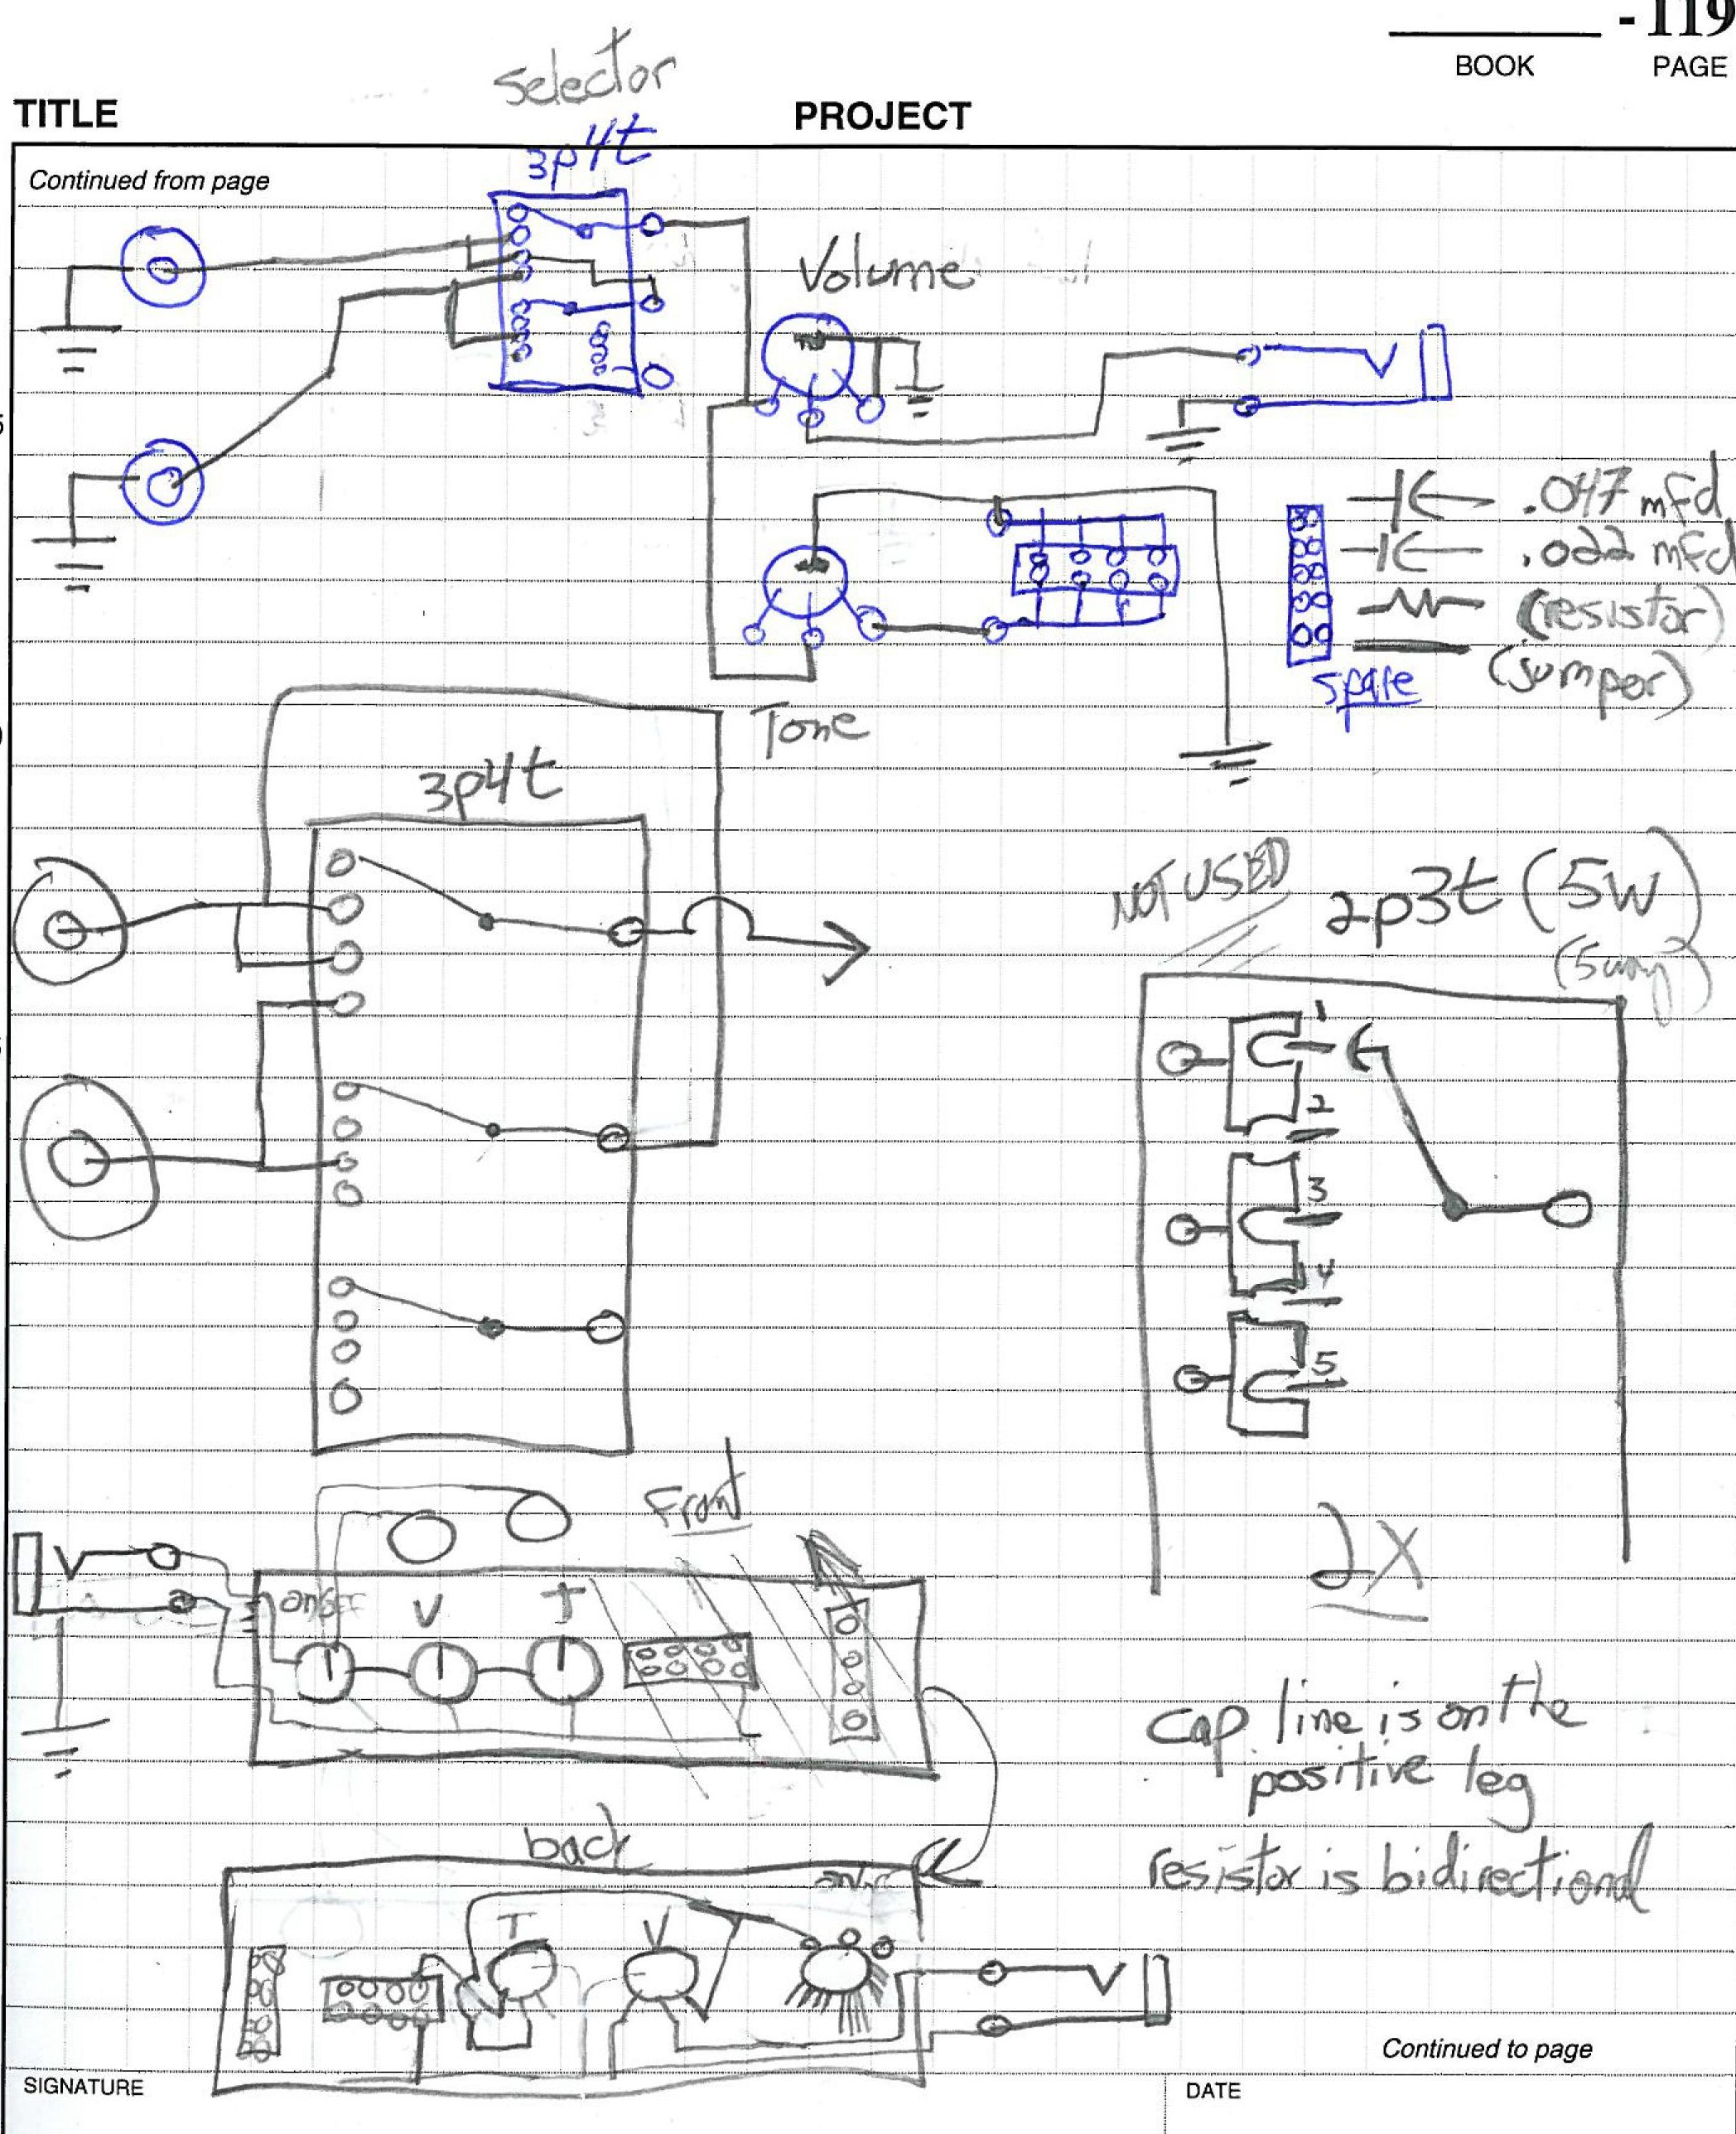 cigar_pickup01?width=721 weekend warrior cbg build, from beginning to end cigar box nation wiring diagram for craftsman radial arm saw at crackthecode.co